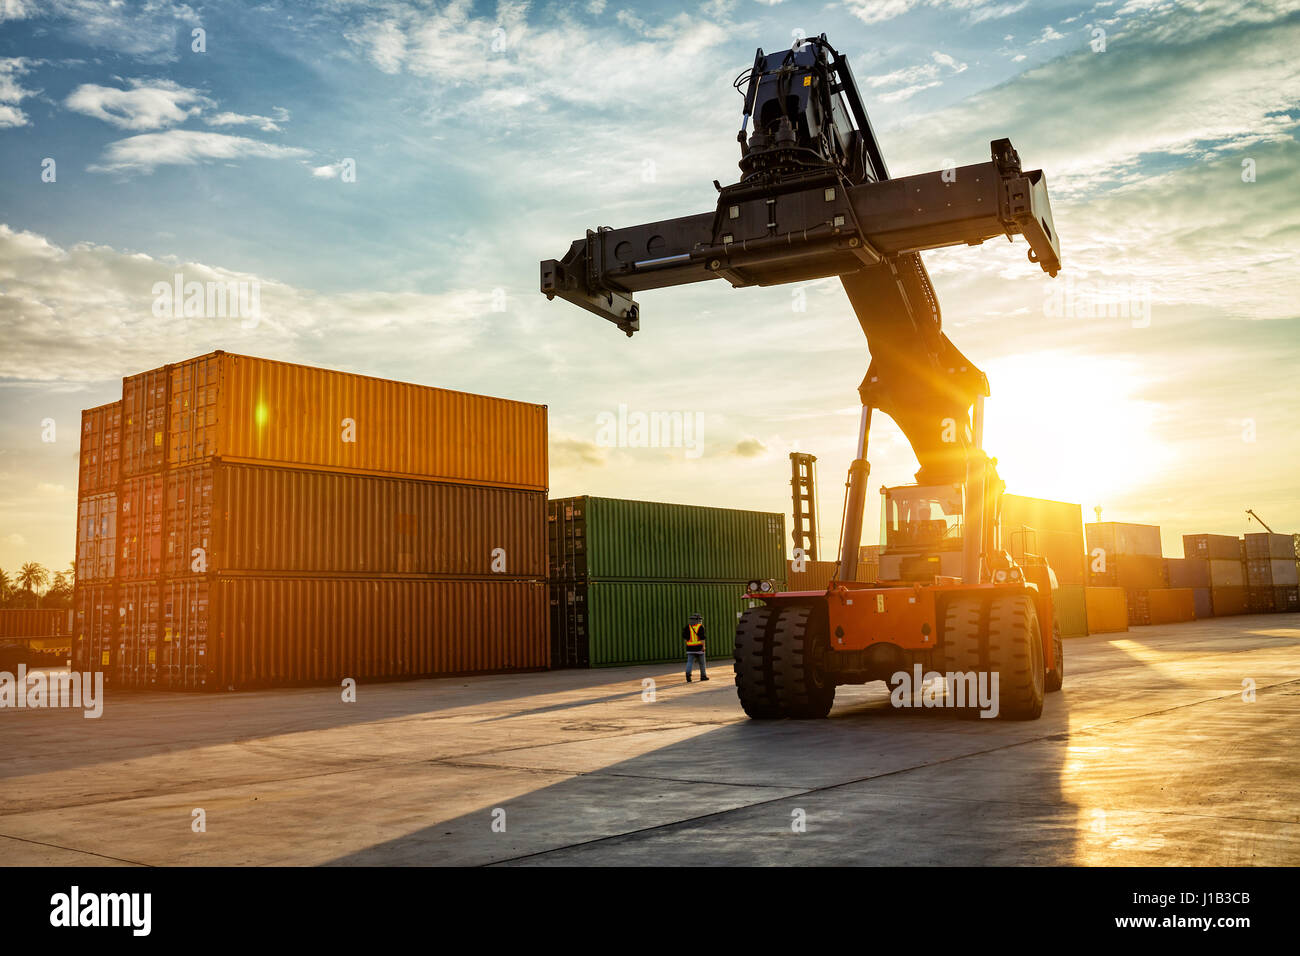 Thailand Laem Chabang Chonburi Industrial logistic forklift truck containers shipping cargo in port at sunset time. - Stock Image